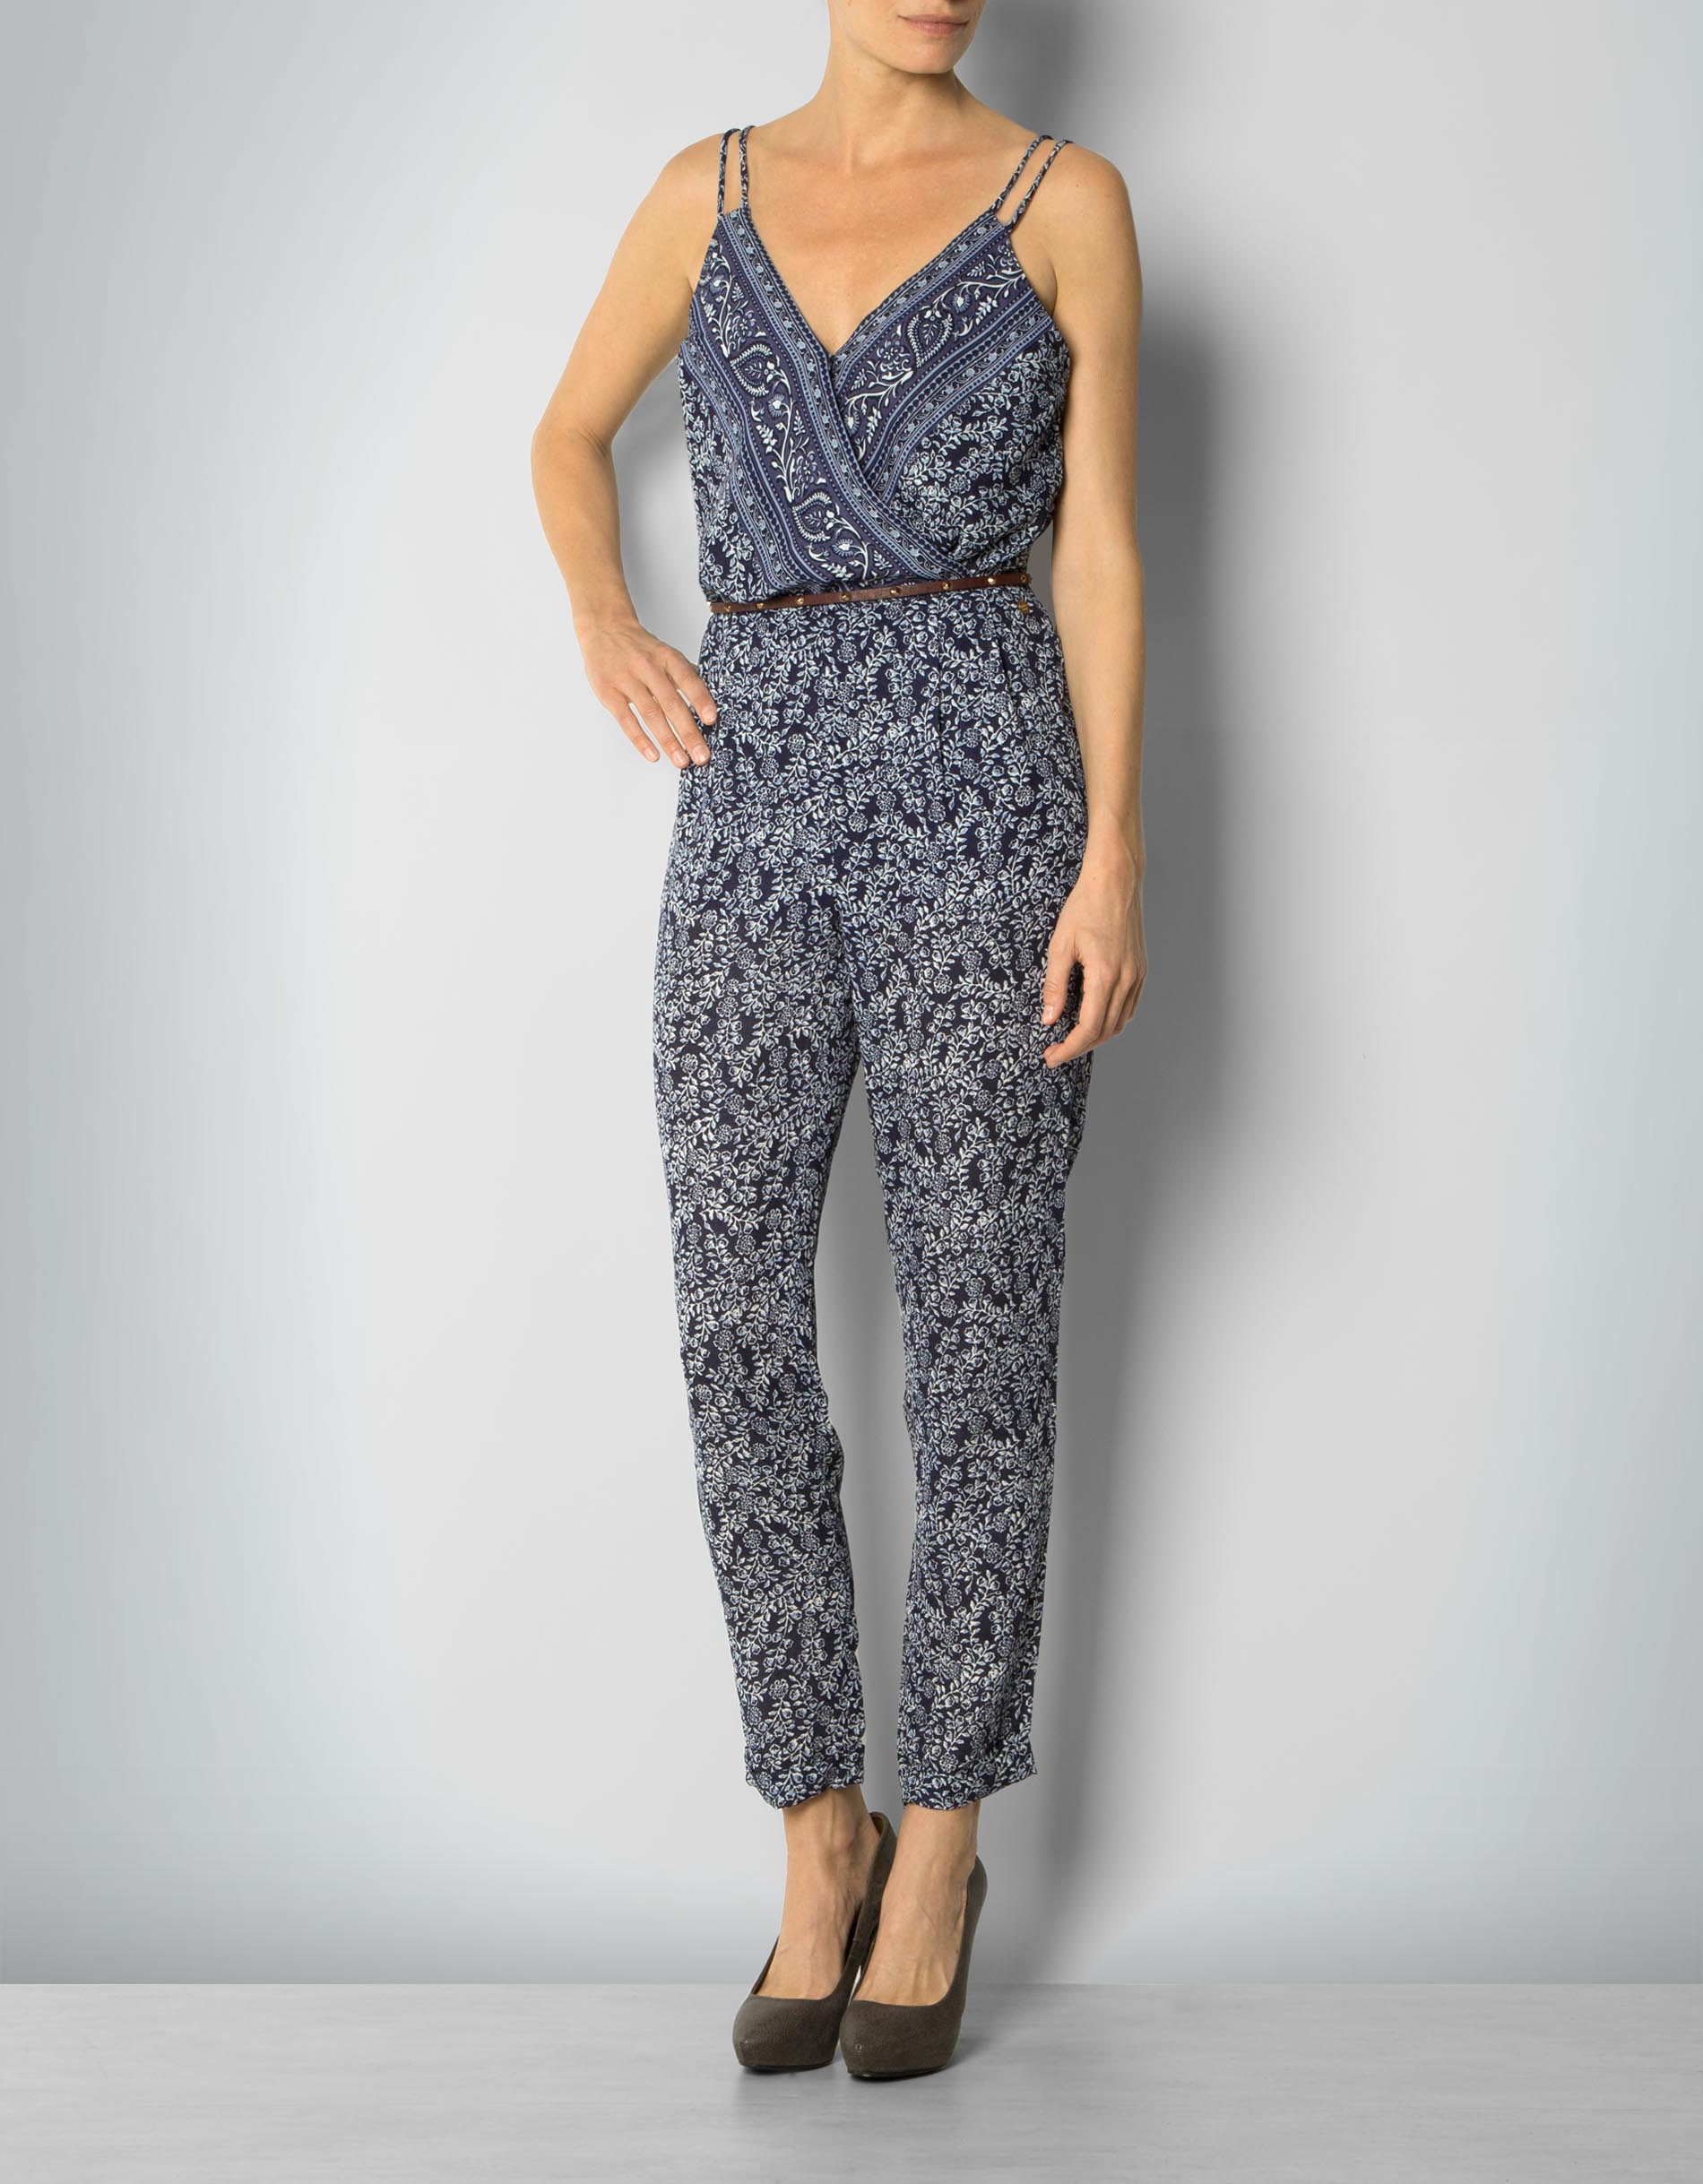 pepe jeans damen jumpsuit donna mit allover print empfohlen von deinen schwestern. Black Bedroom Furniture Sets. Home Design Ideas